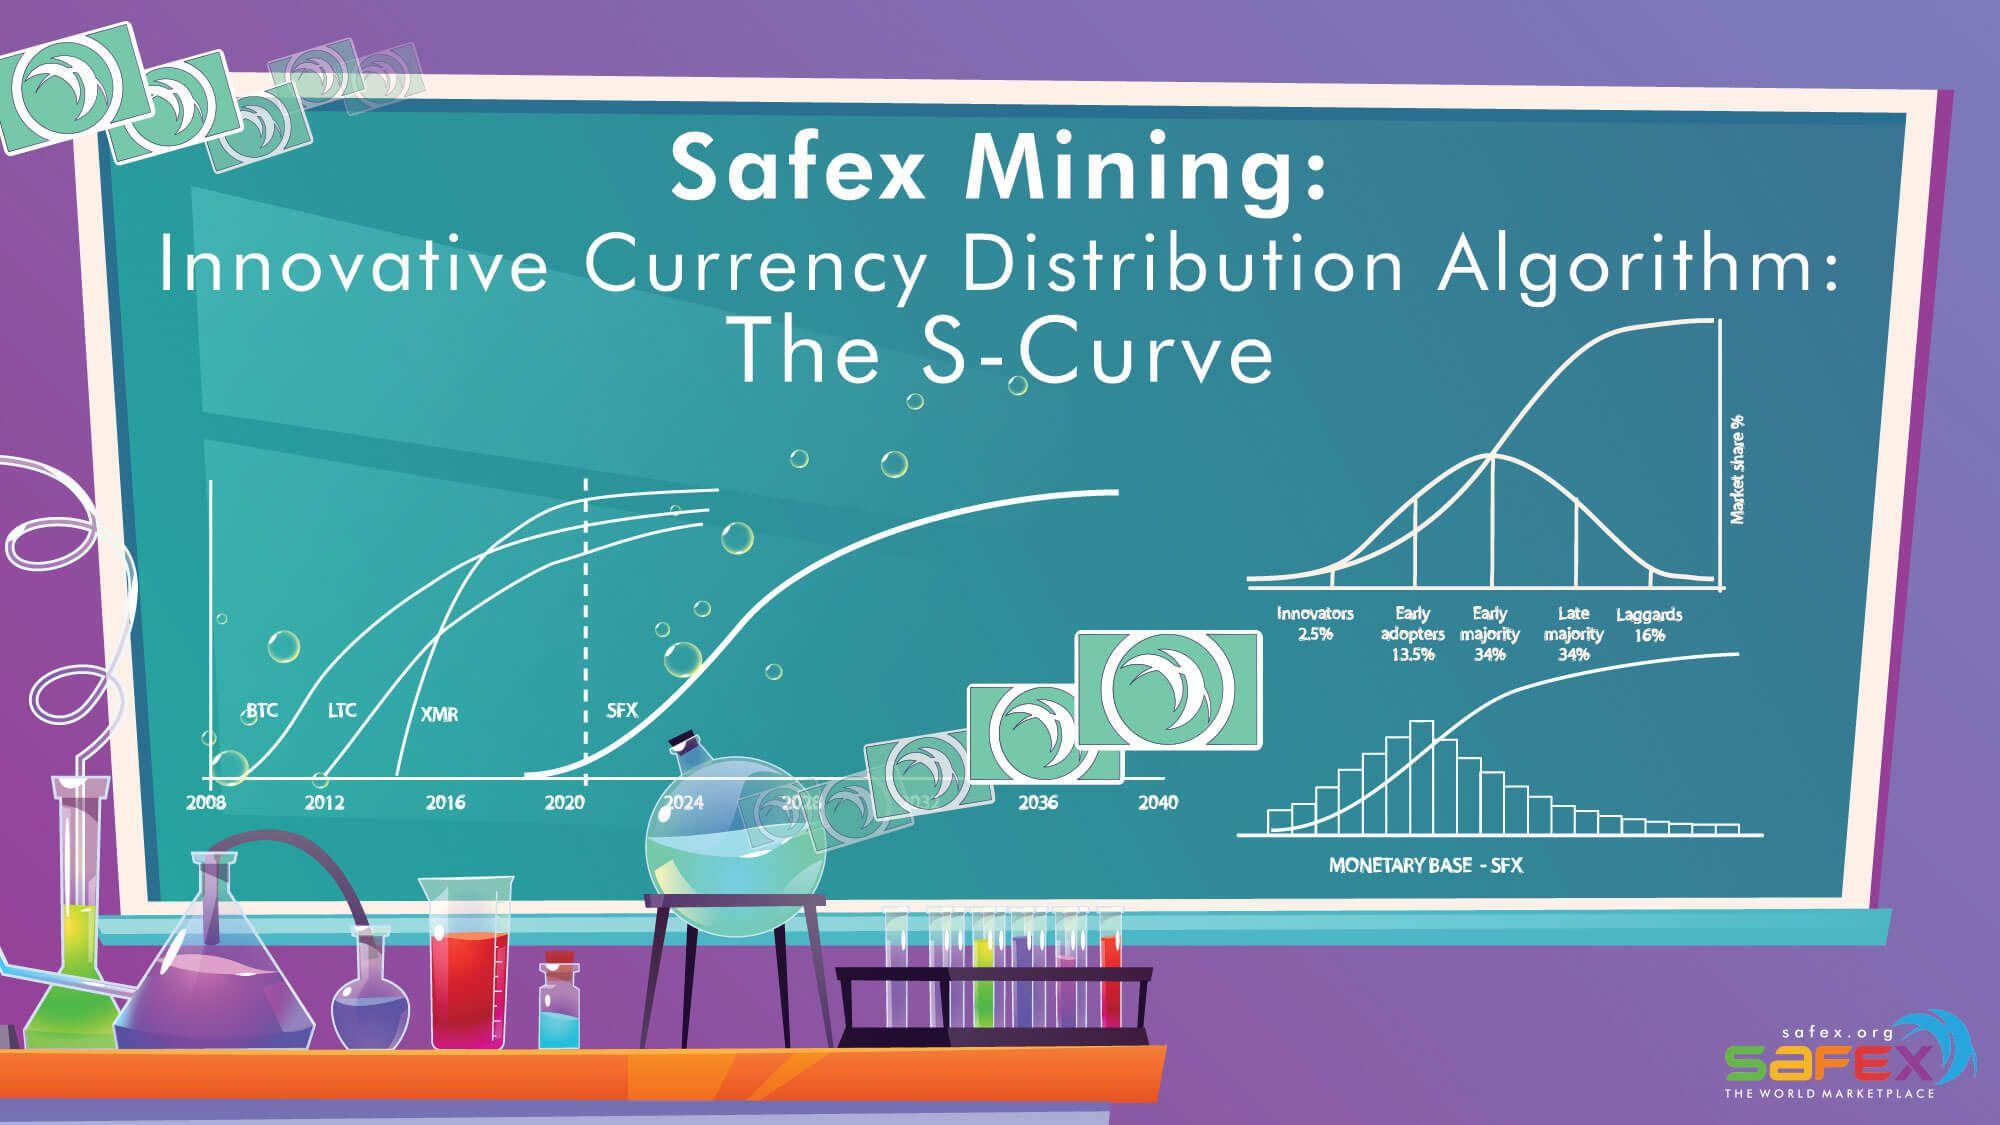 Safex Mining Innovative Currency Distribution Algorithm: The S-Curve